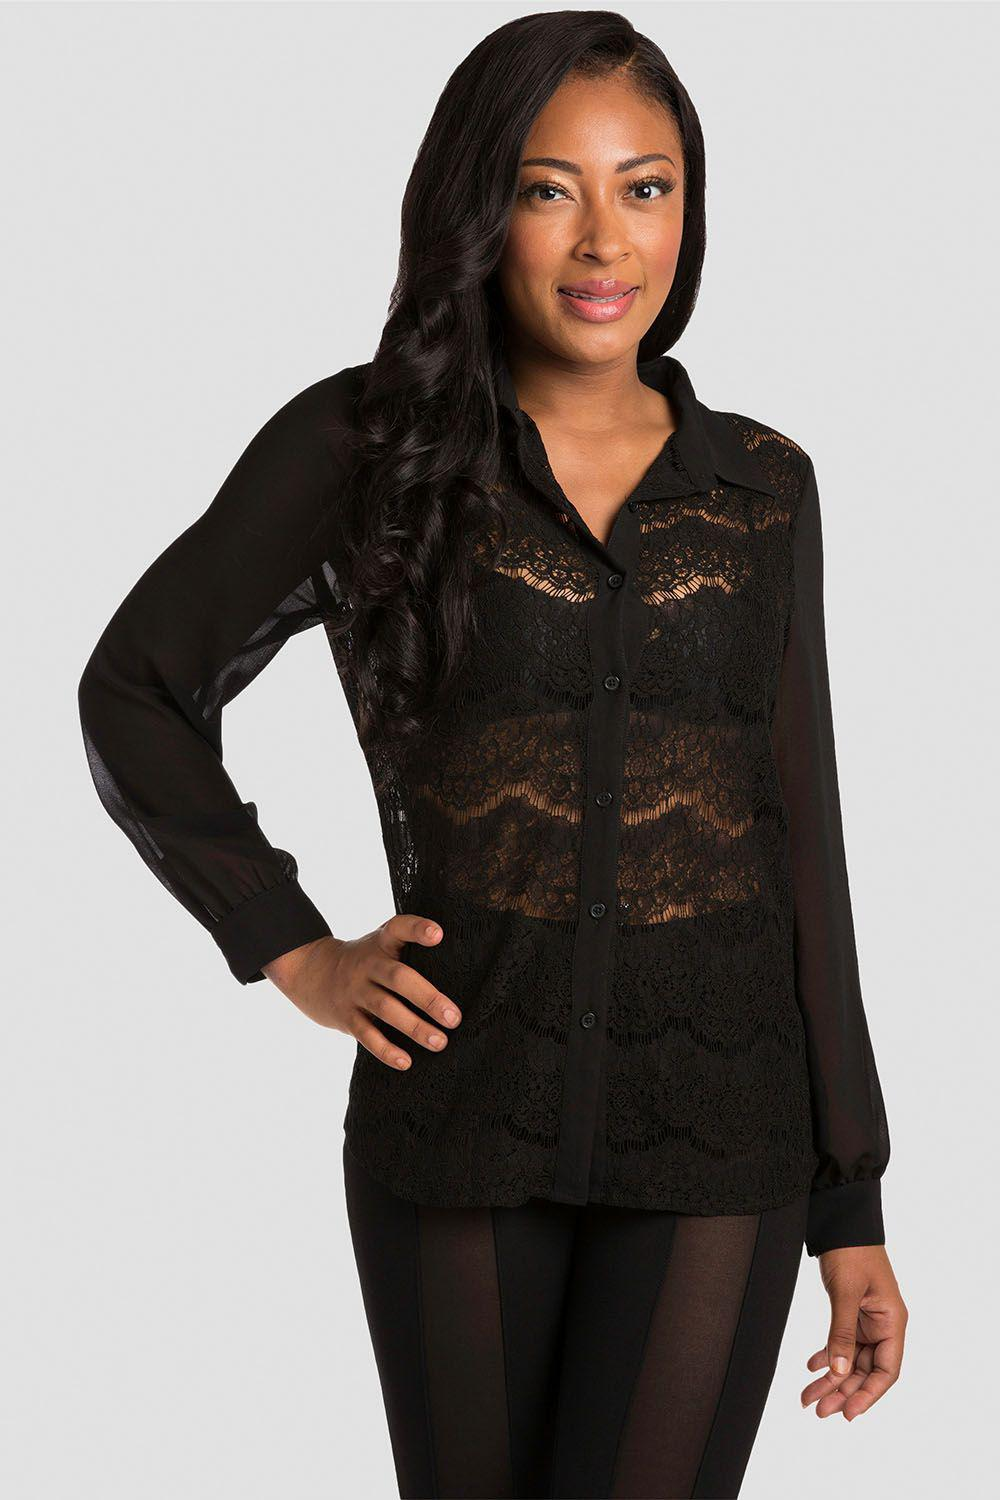 Coco Black Lace Collared Shirt